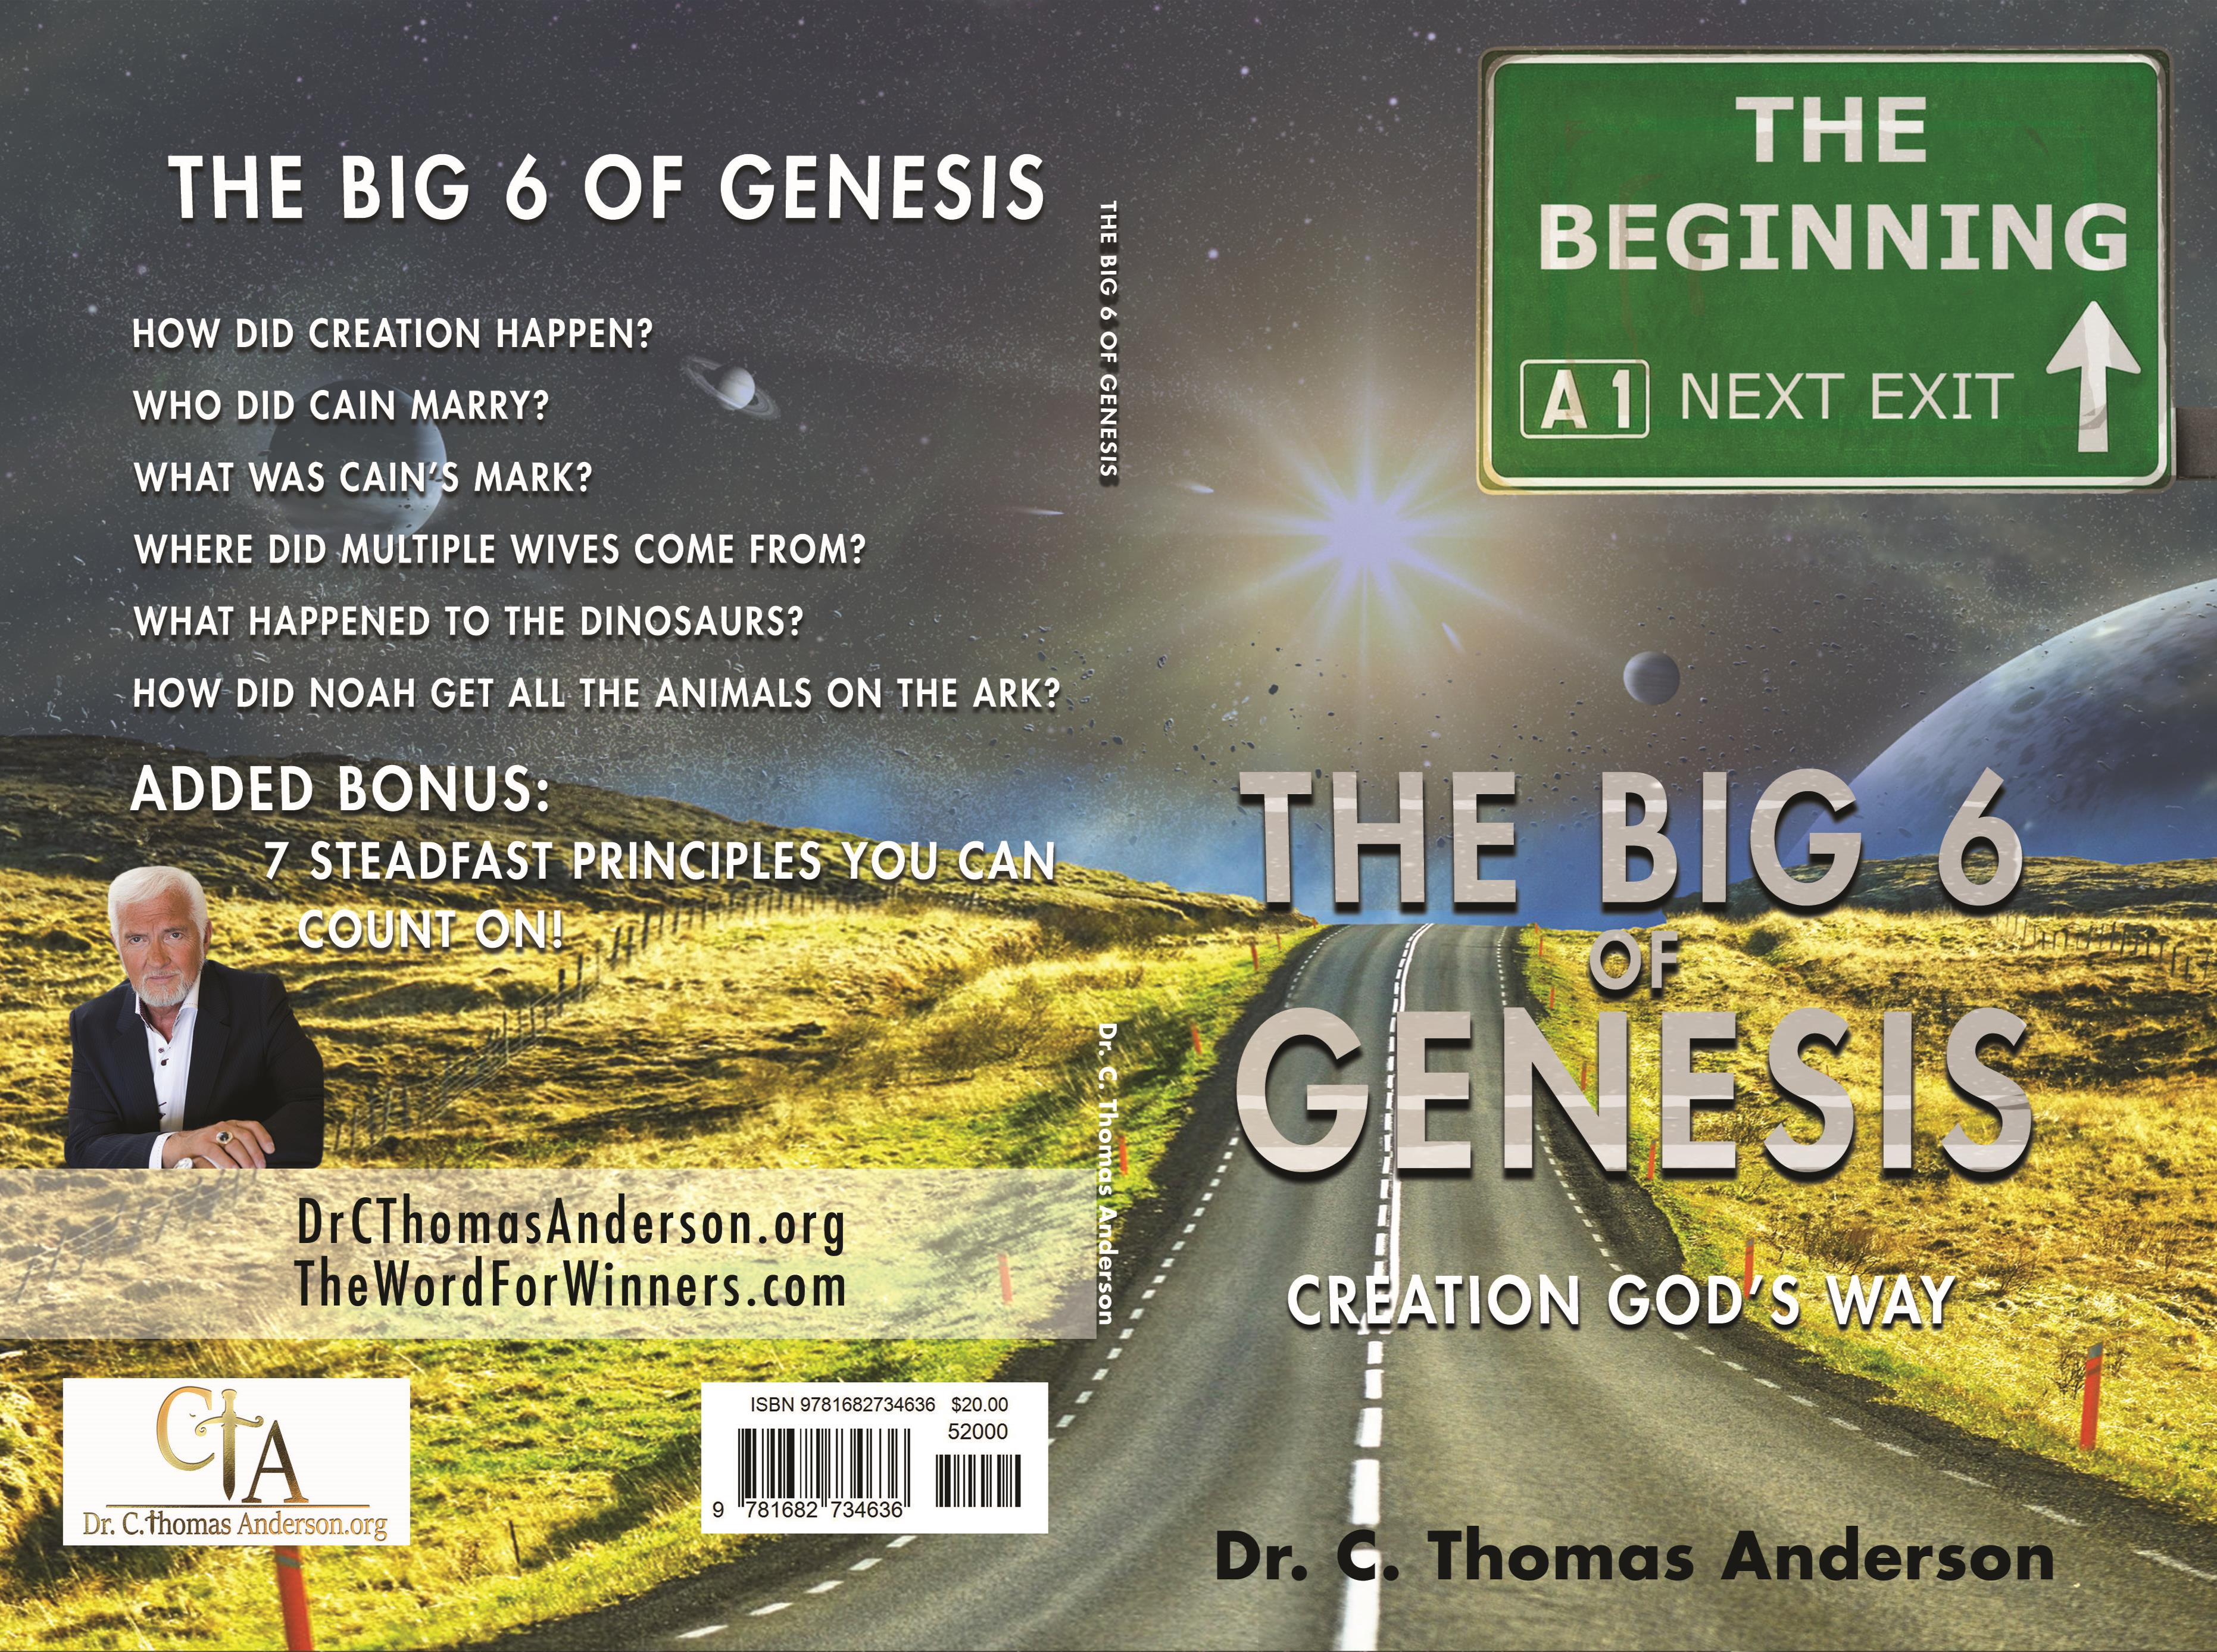 The Big 6 of Genesis cover image